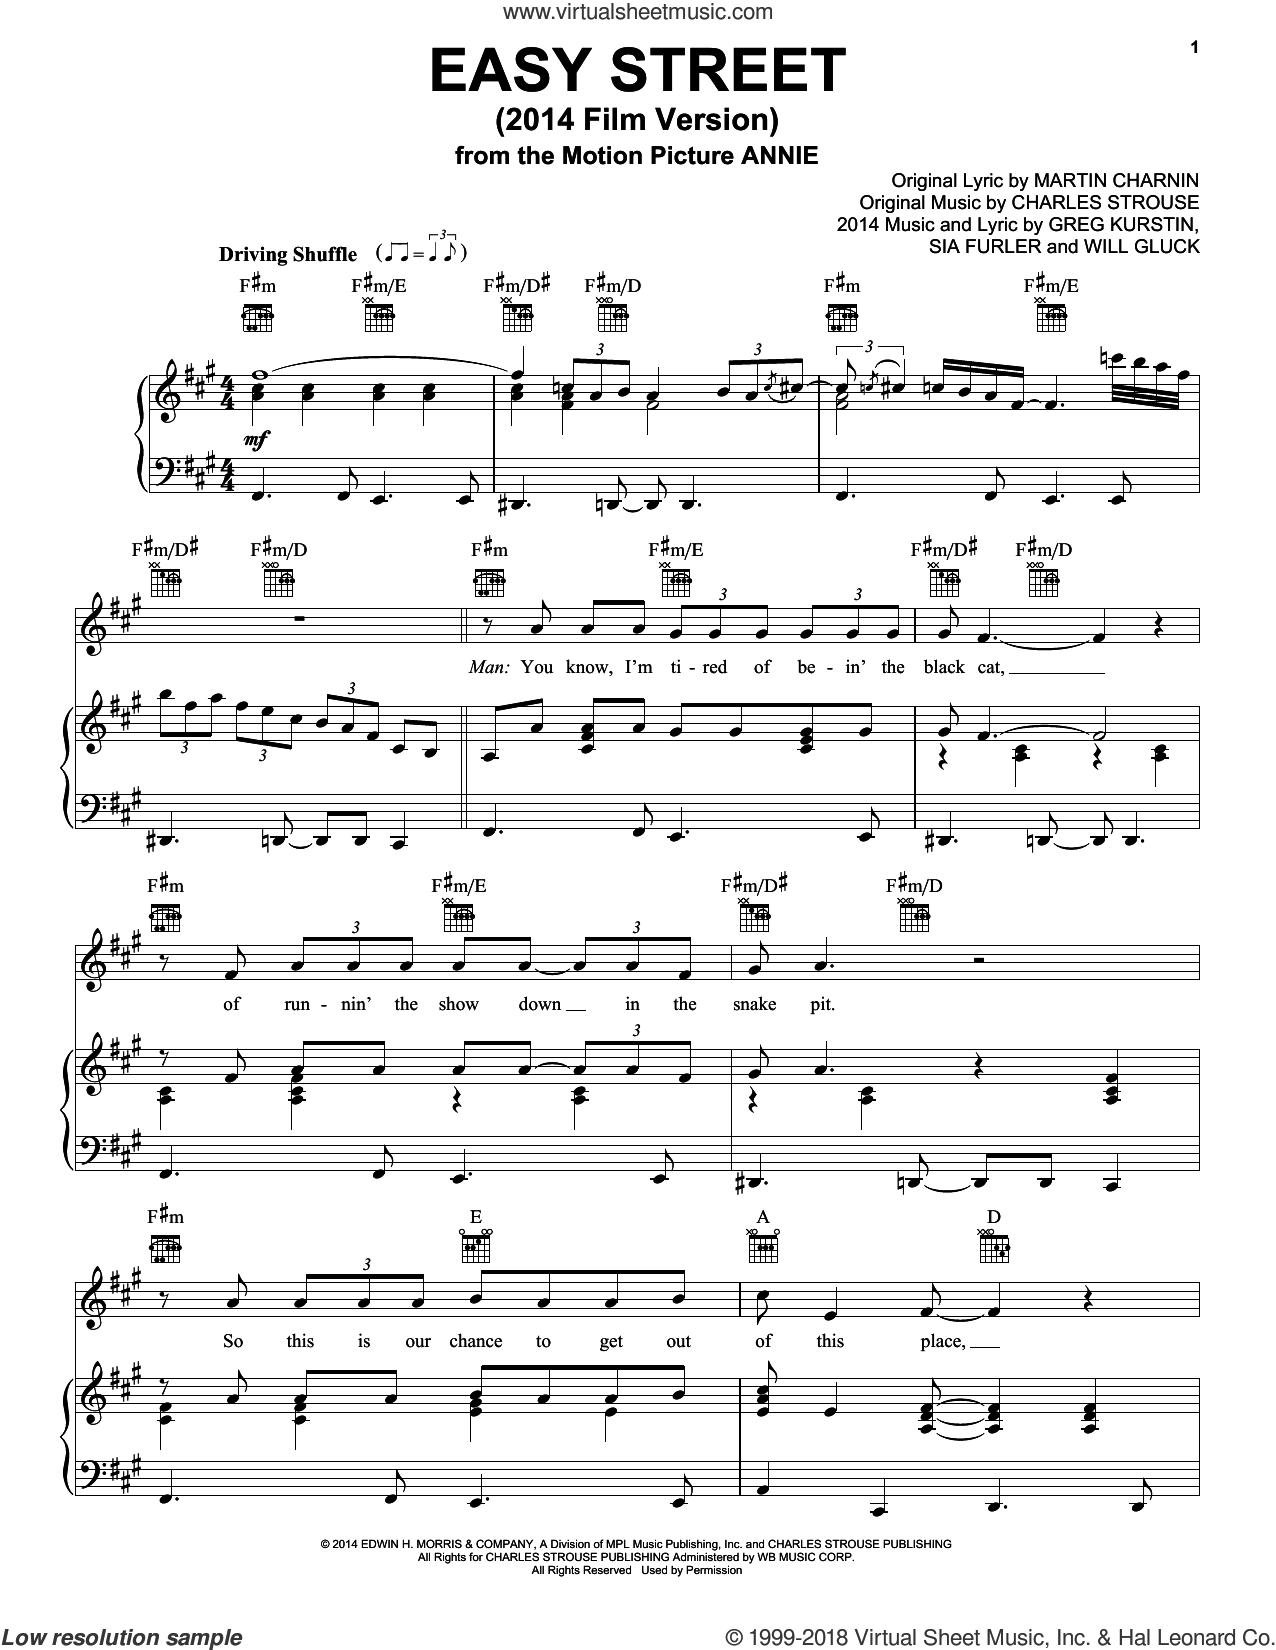 Easy Street (2014 Film Version) sheet music for voice, piano or guitar by Christoph Willibald Gluck, Charles Strouse, Greg Kurstin, Martin Charnin and Sia Furler. Score Image Preview.